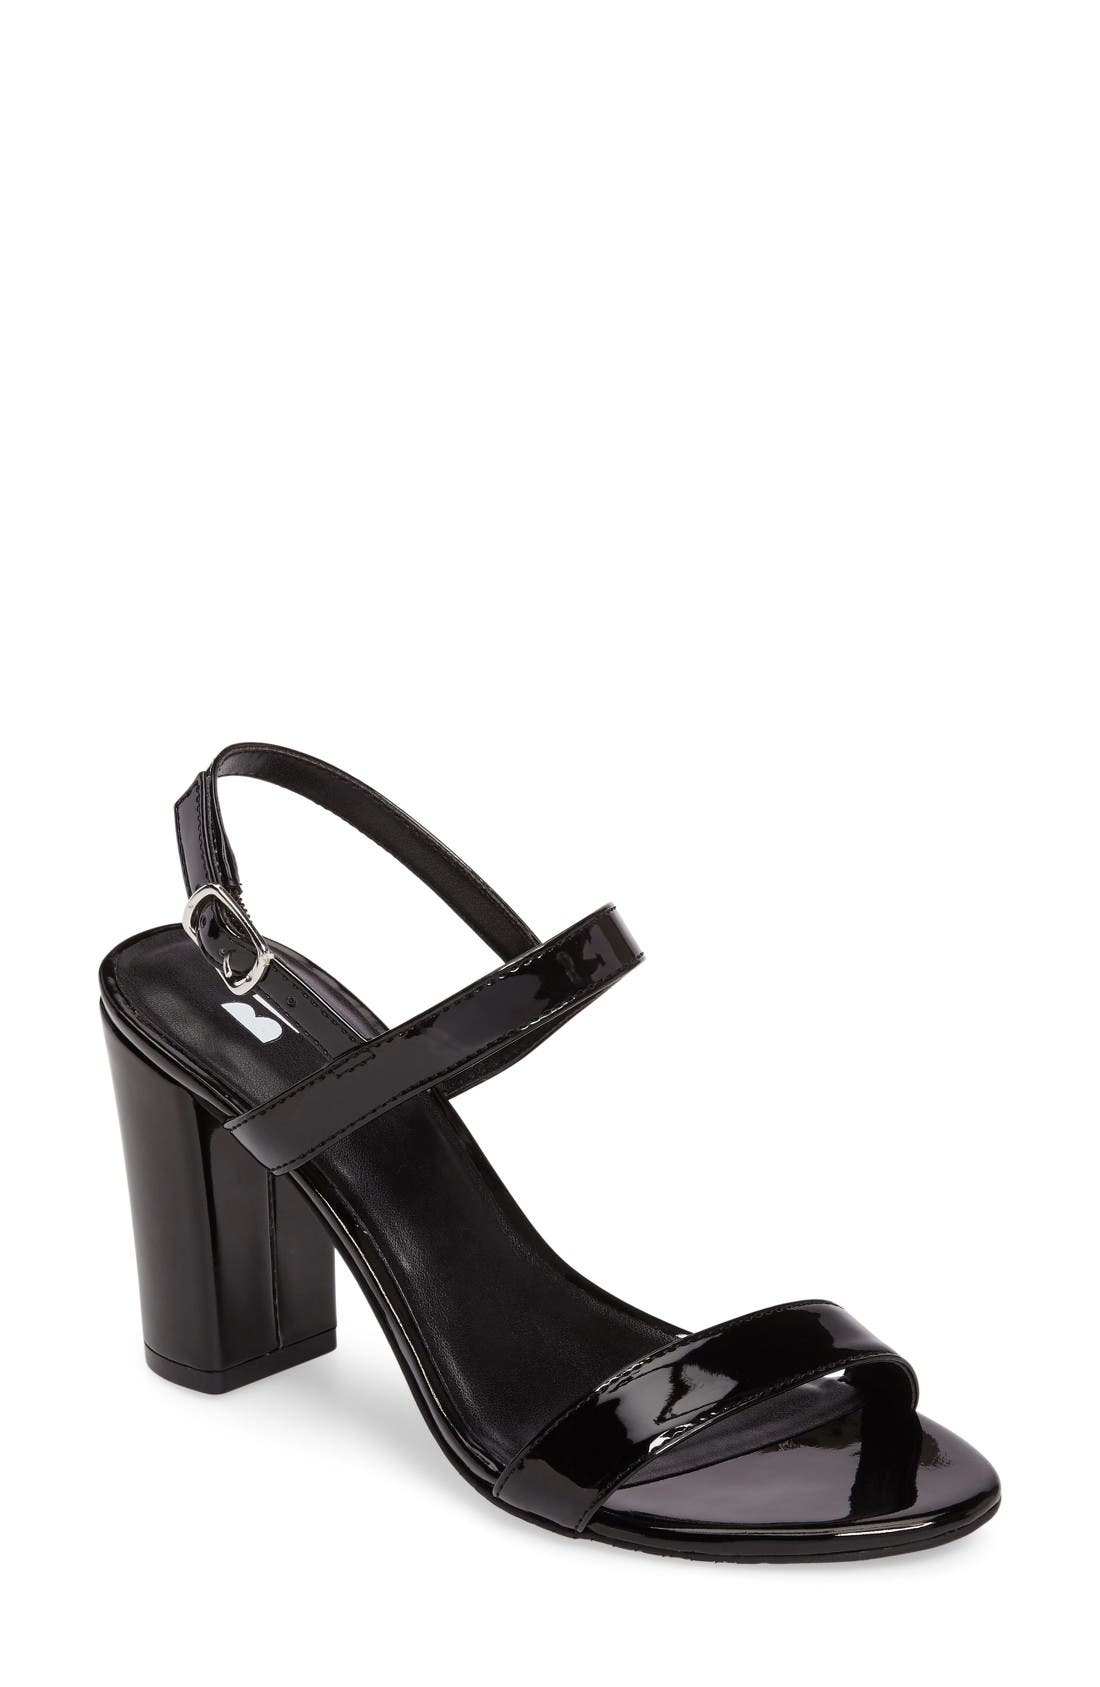 Black sandals with straps - Black Sandals With Straps 50